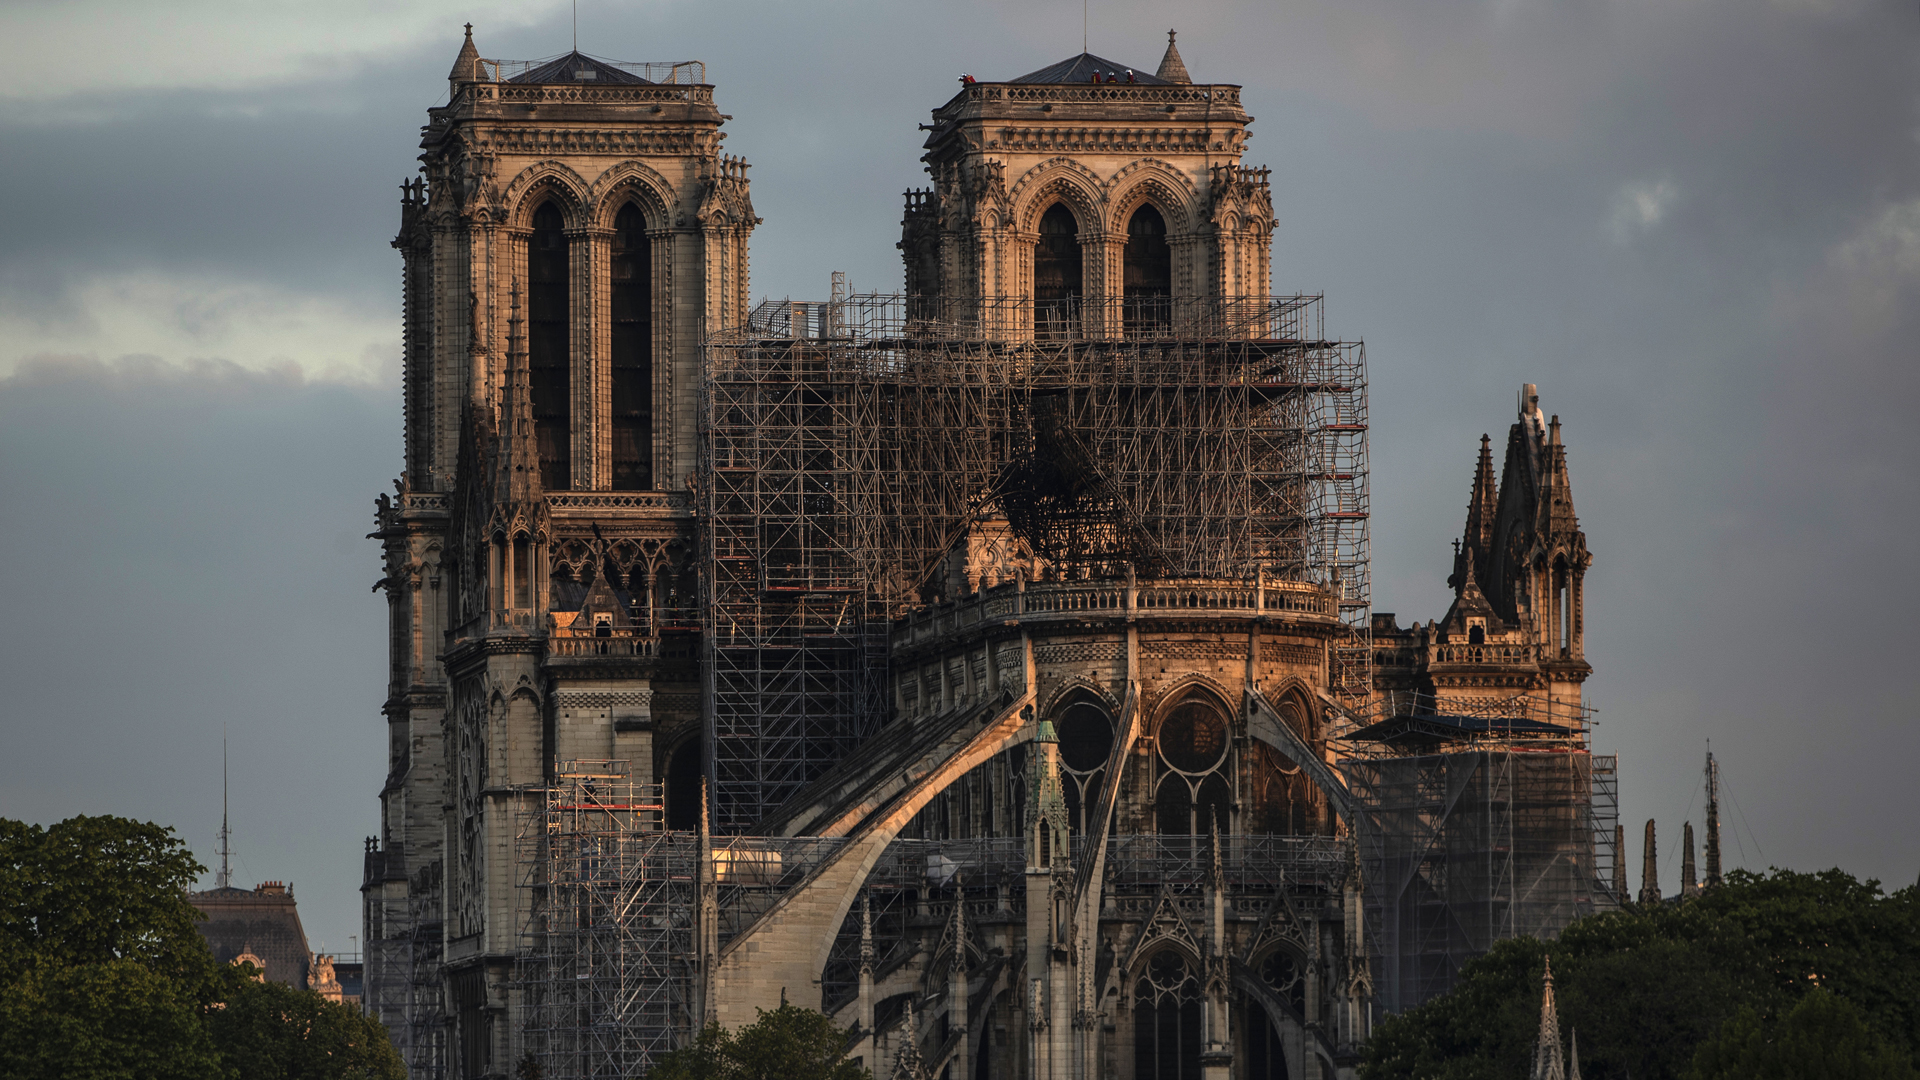 The Notre Dame Cathedral is seen after the fire on April 17, 2019, in Paris, France. (Credit: Dan Kitwood/Getty Images)